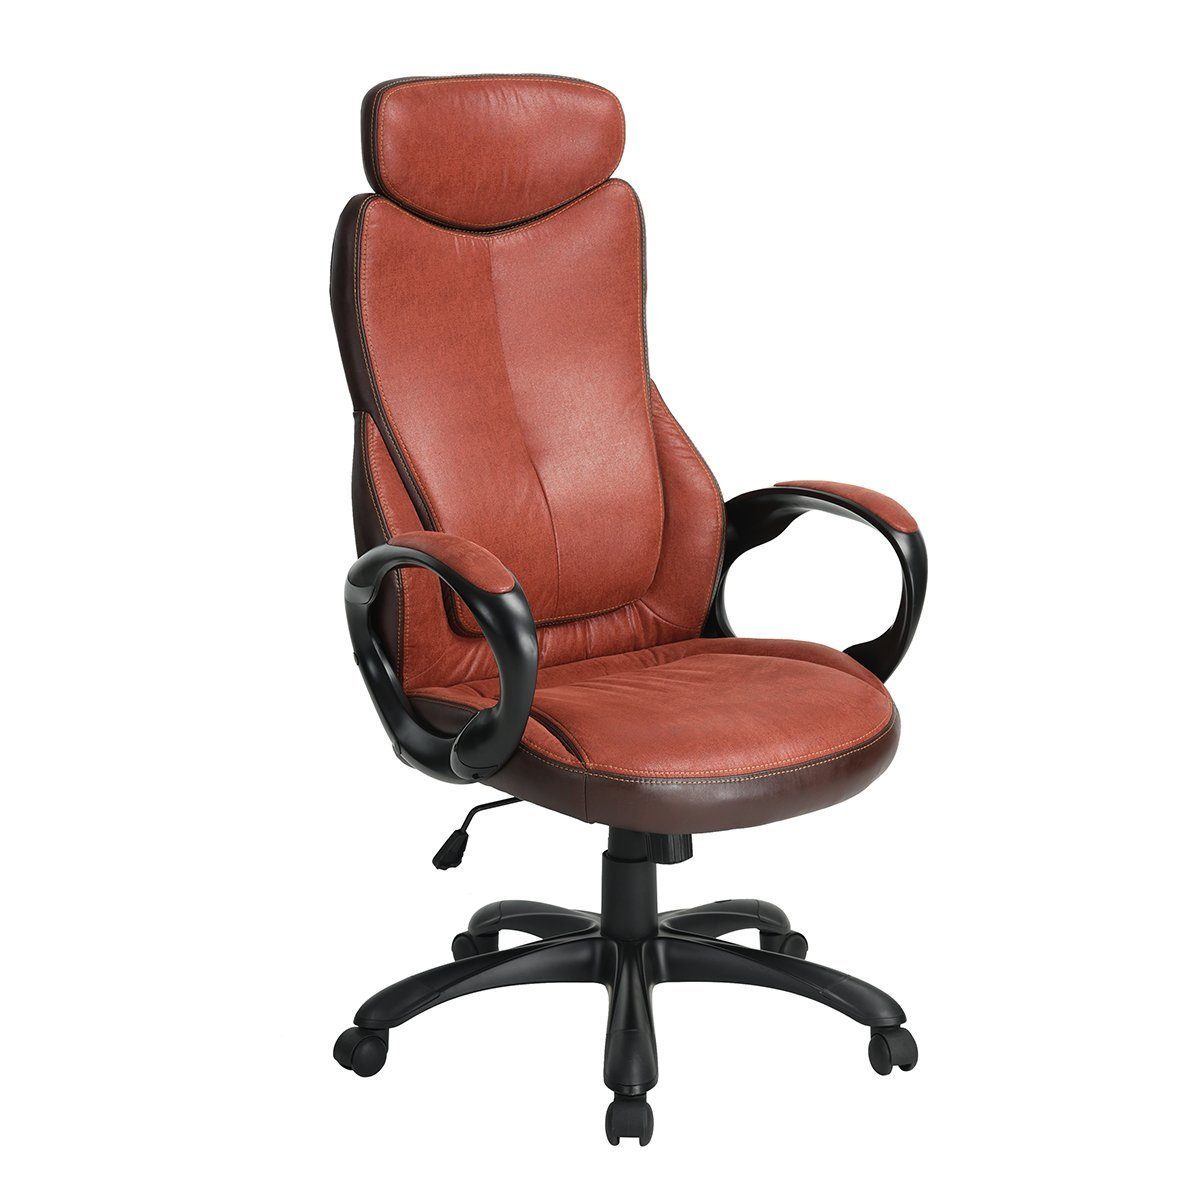 Office chair Desk Chairs Reception Chairs Office Task Chairs Managerial Chairs Stacking Chairs Fixed Chairs Executive Chairs Living Room Chairs Home Office Desk Chairs